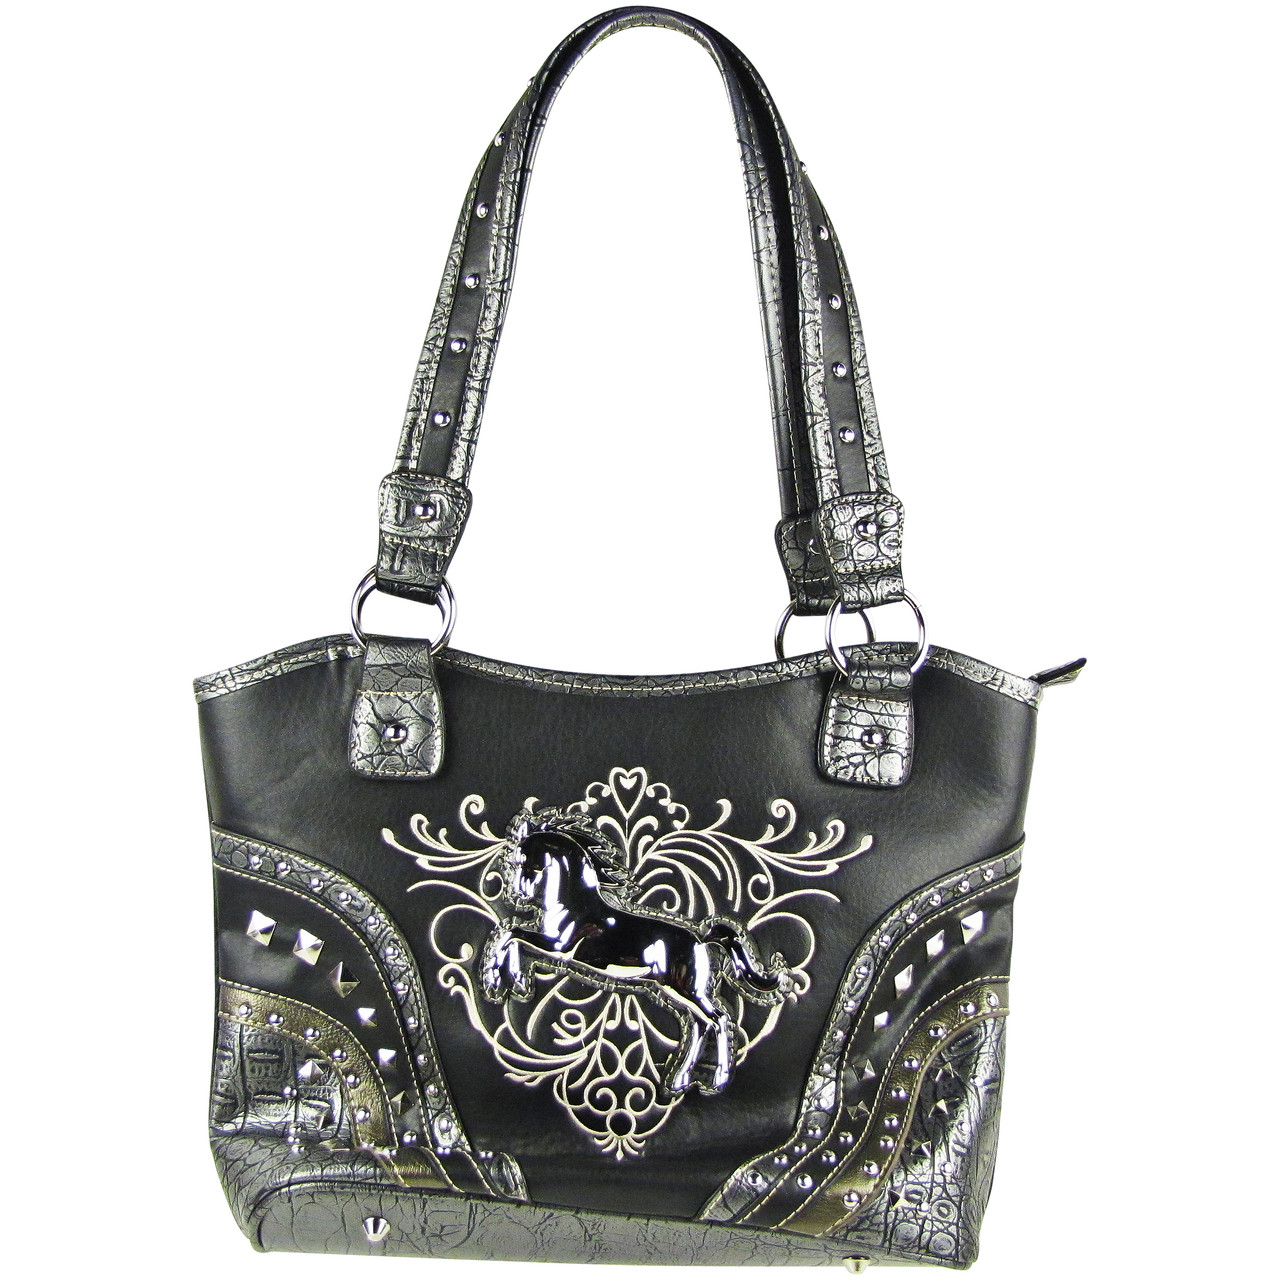 BLACK METAL HORSE WITH STITCHED DESIGN LOOK SHOULDER HANDBAG HB1-W22HSBLK